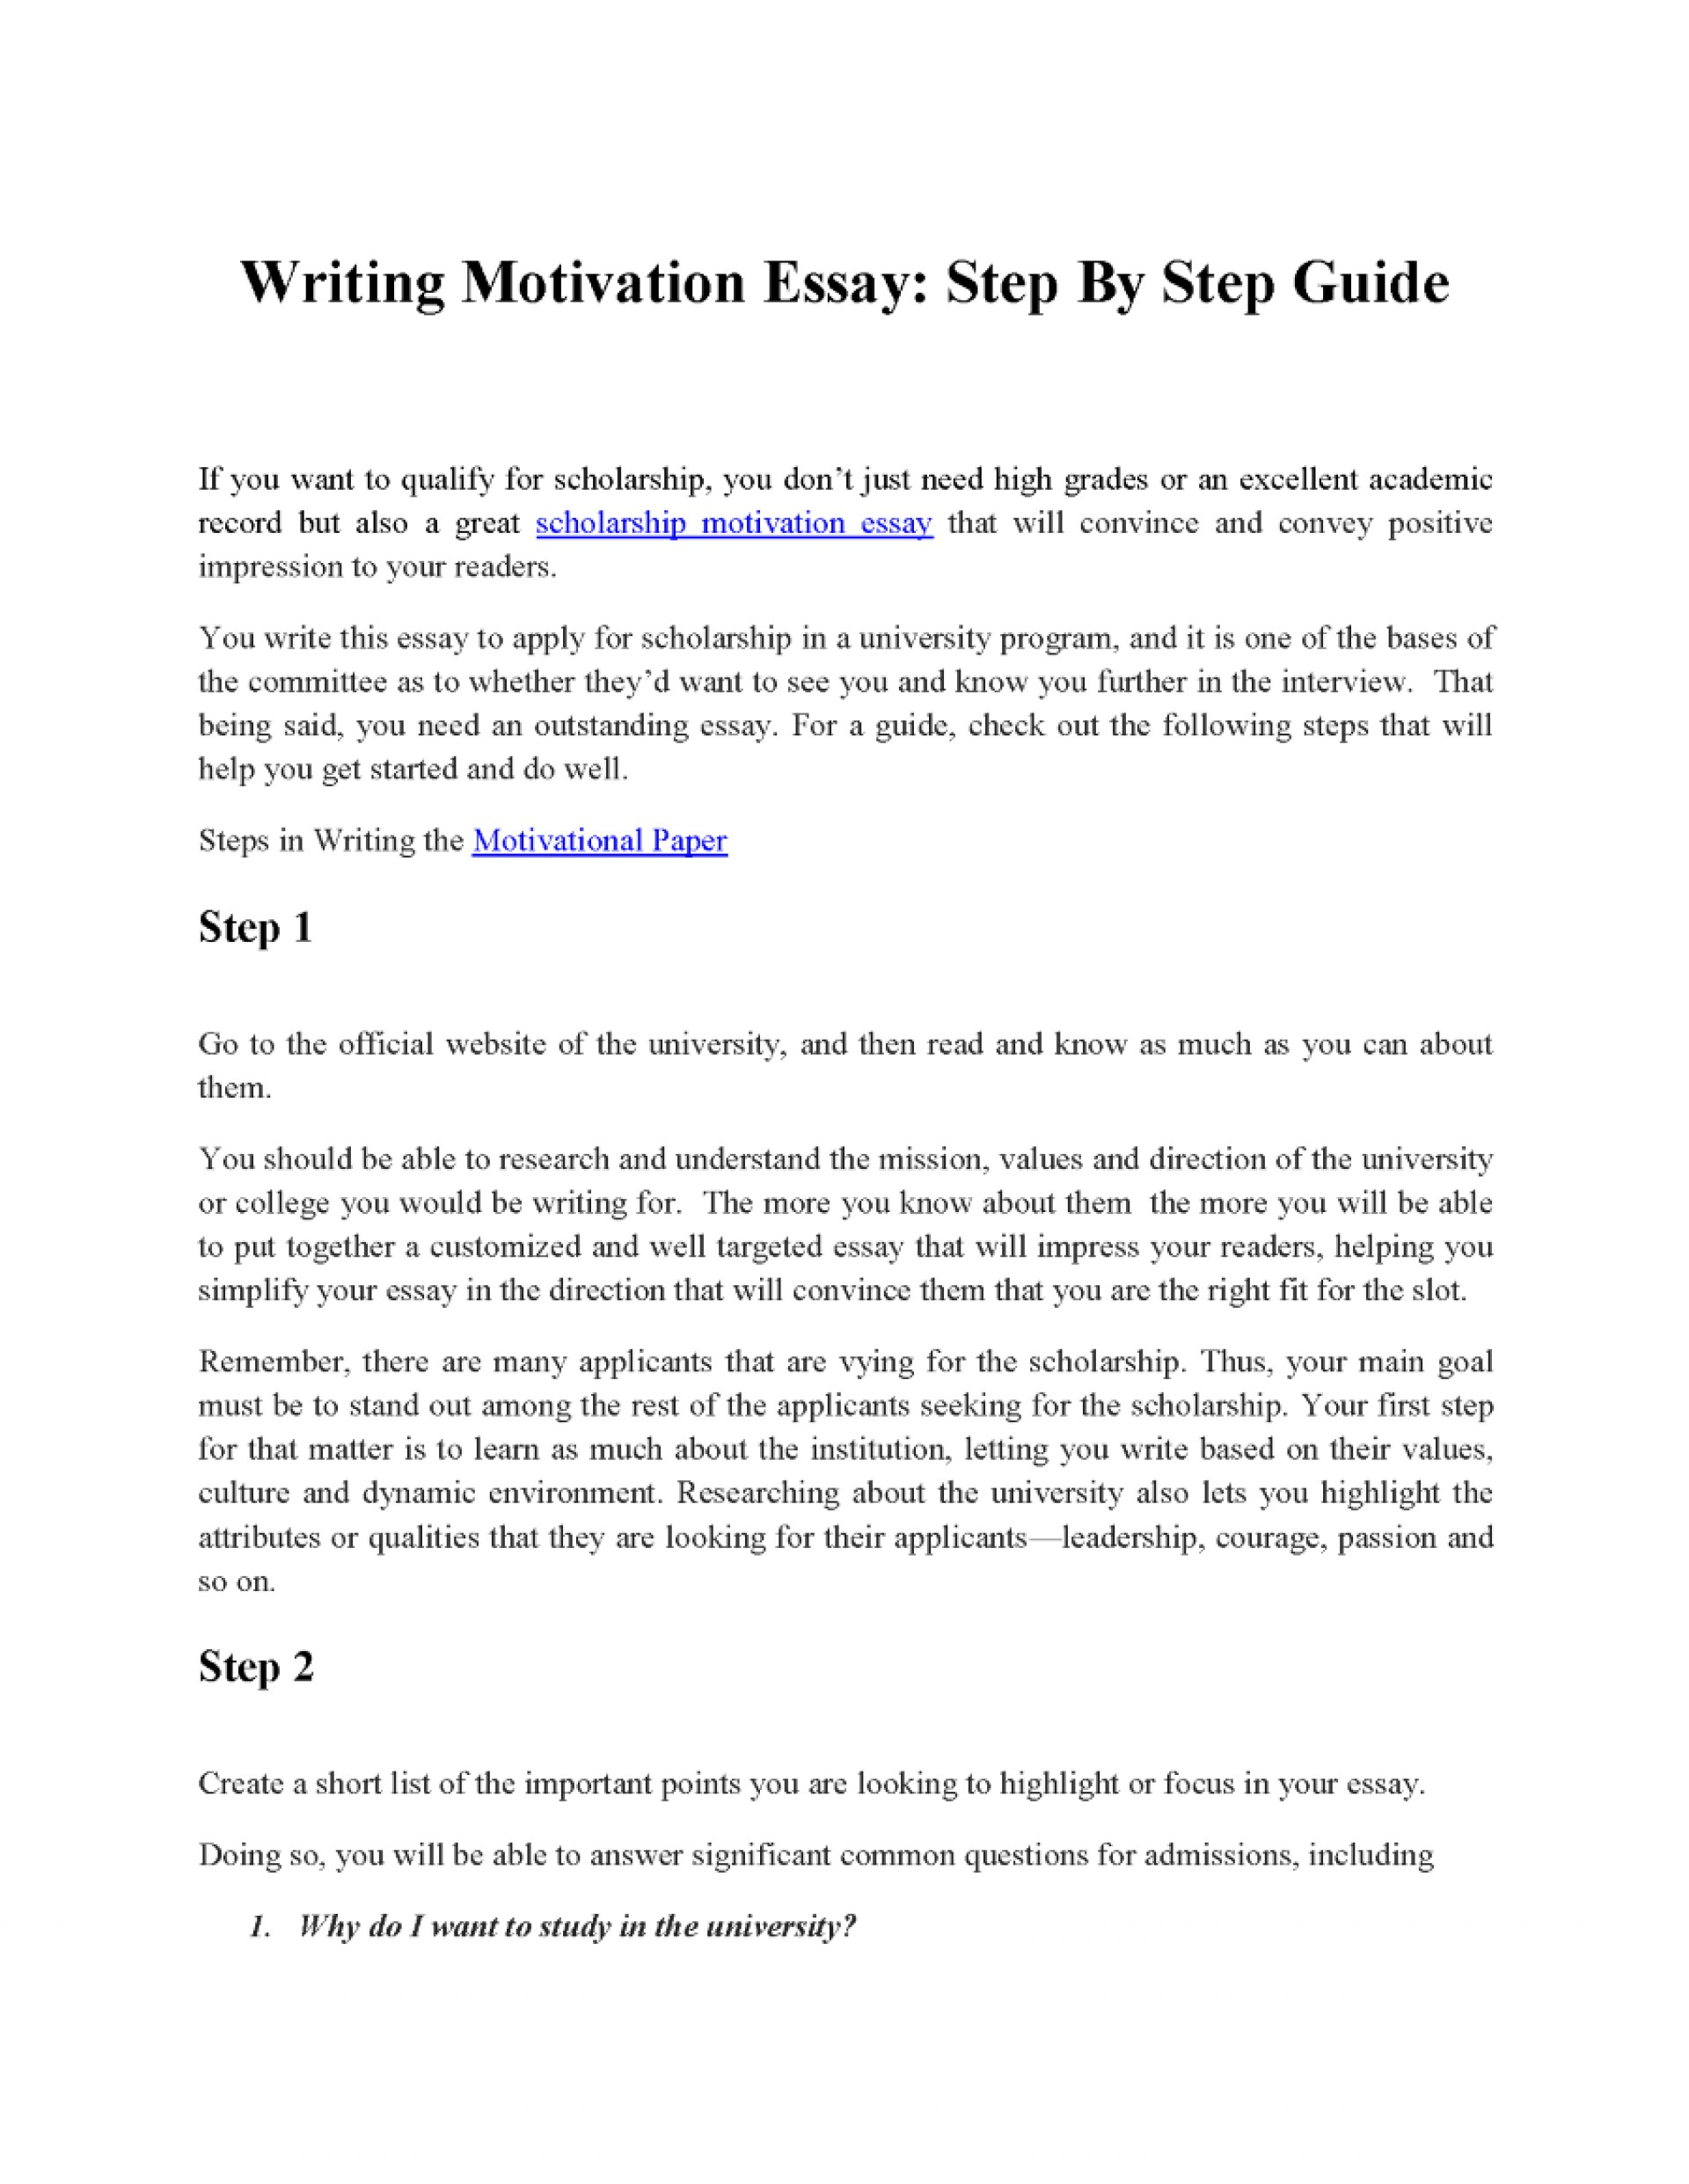 017 2948595 636128784141107500 Slide1 Fs Research Paper Steps To Write Unbelievable 10 A Basic Writing Ppt How Pdf 1920